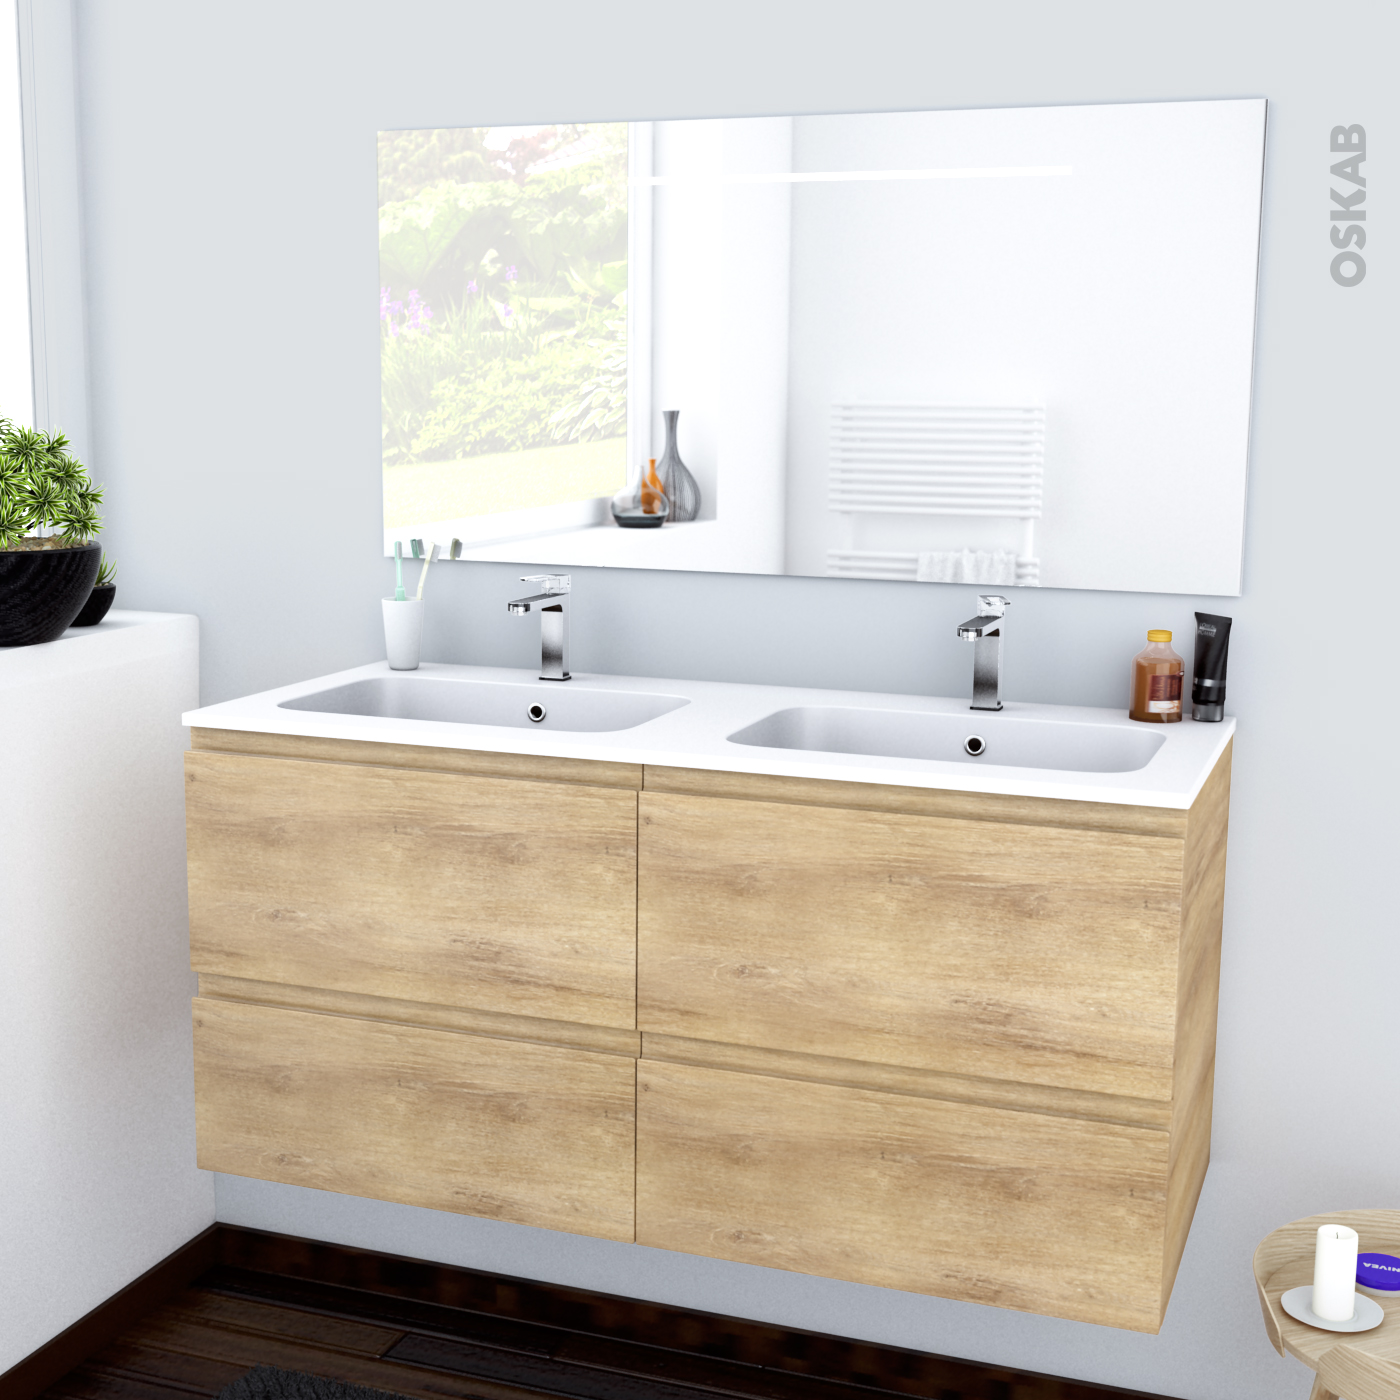 Lavabo double vasque retro simple beliani meuble meubles - Meuble salle de bain 120 double vasque ...